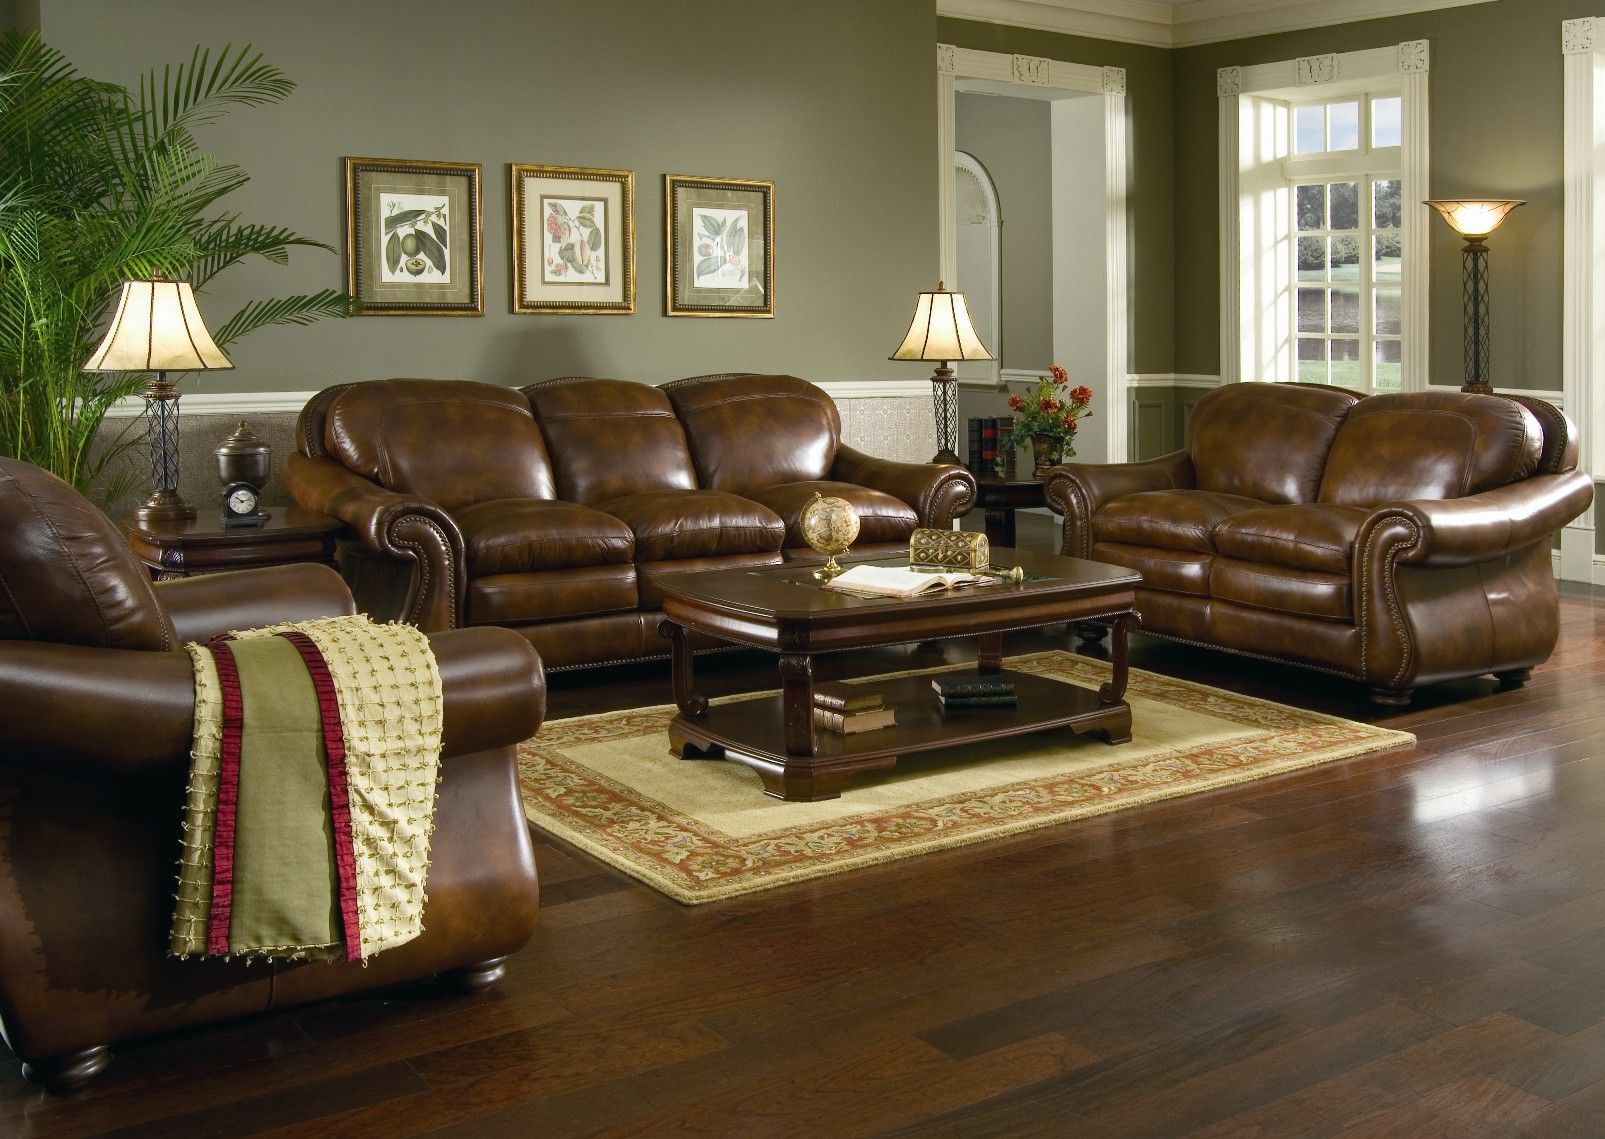 Leather living room furniture in living room with brown leather sofa home design and decorating ideas